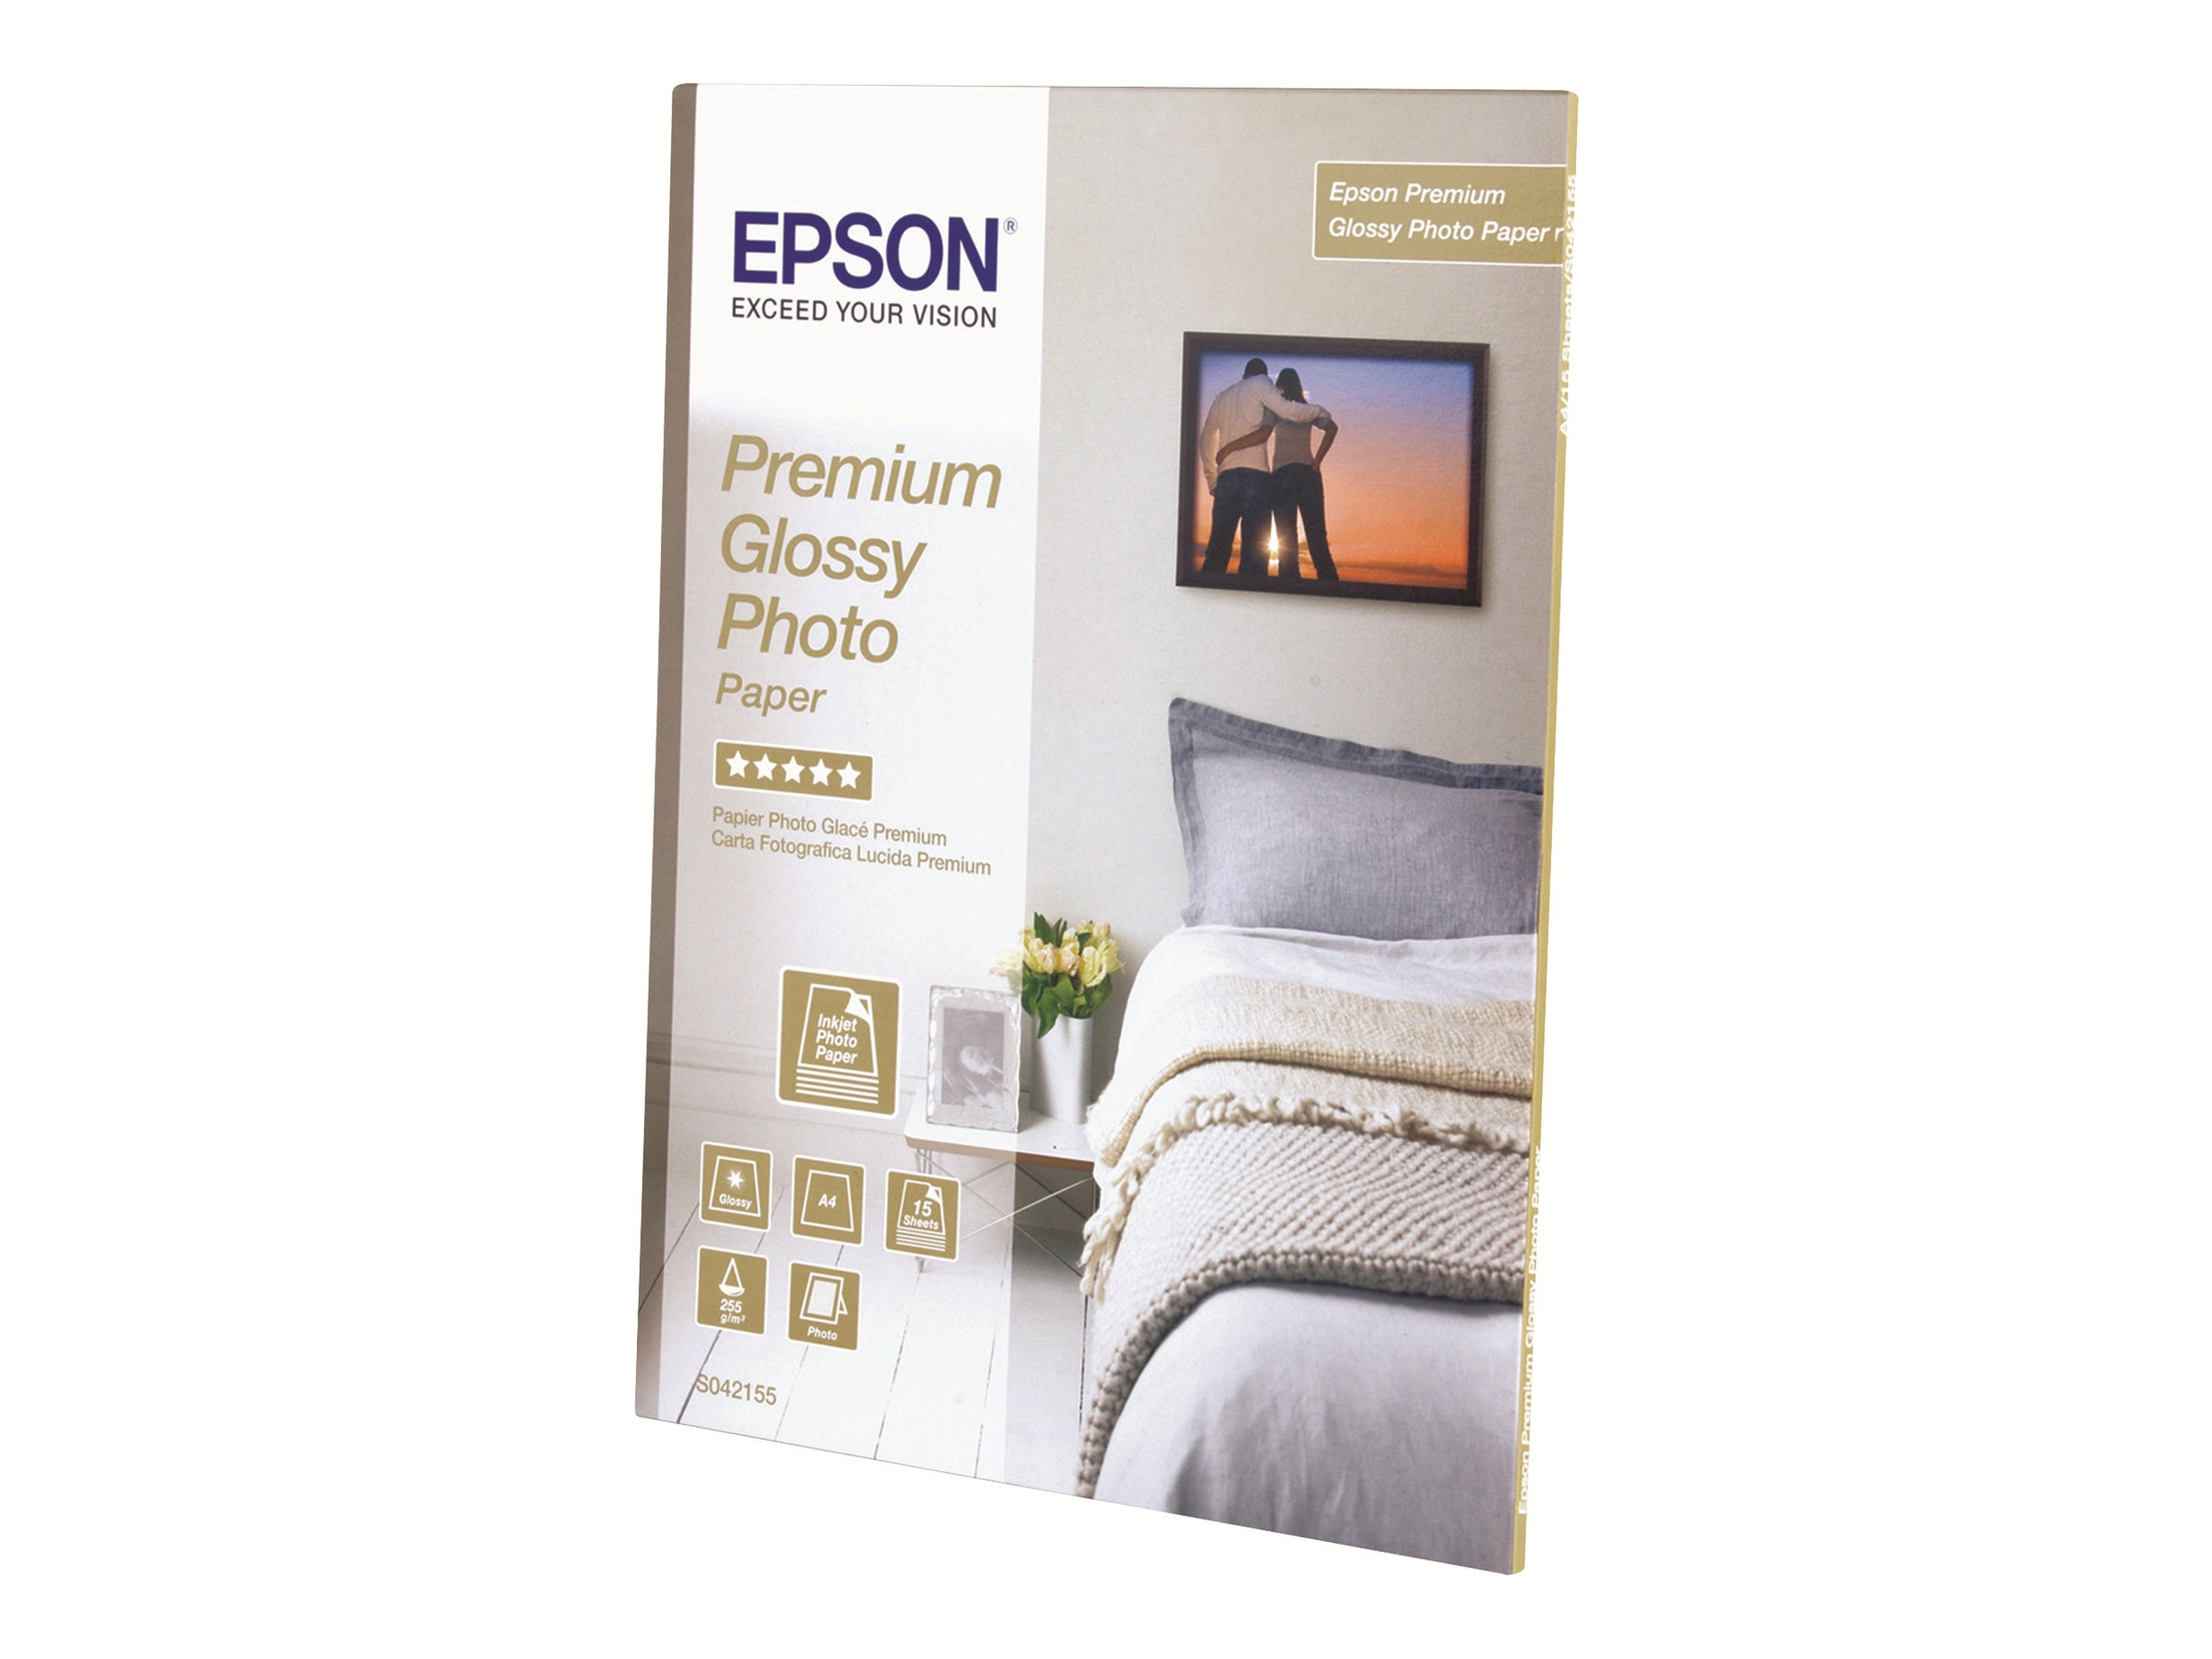 Epson 8.5 x 11 Premium Photo Paper Glossy (25-Sheets), S042183, 8618737, Paper, Labels & Other Print Media